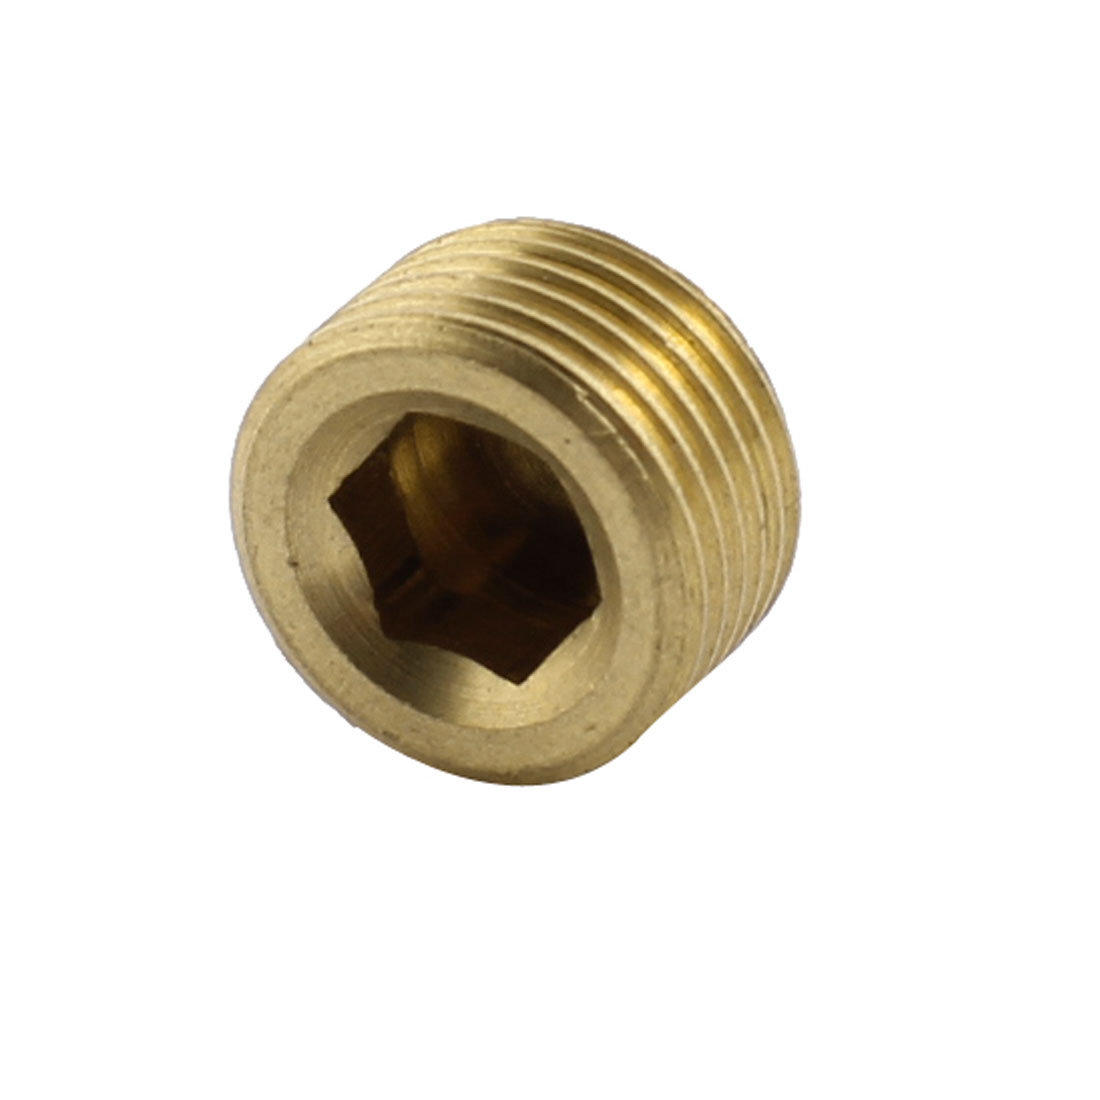 3/8PT Male Thread 9mm Height Brass Internal Hex Socket Head Pipe Plug Connector Coupler Adaper